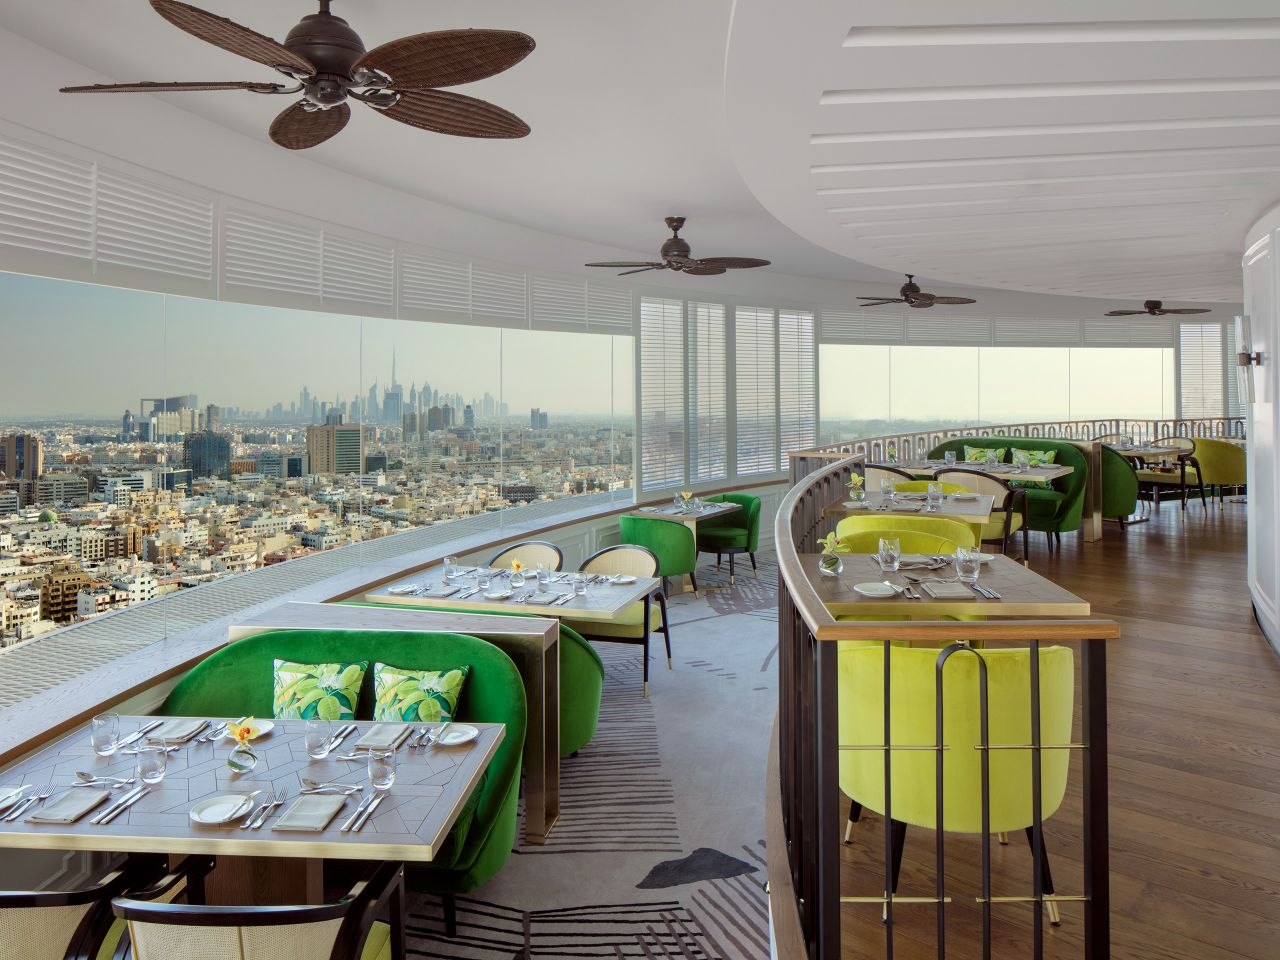 Revolving restaurant with daytime view of Dubai